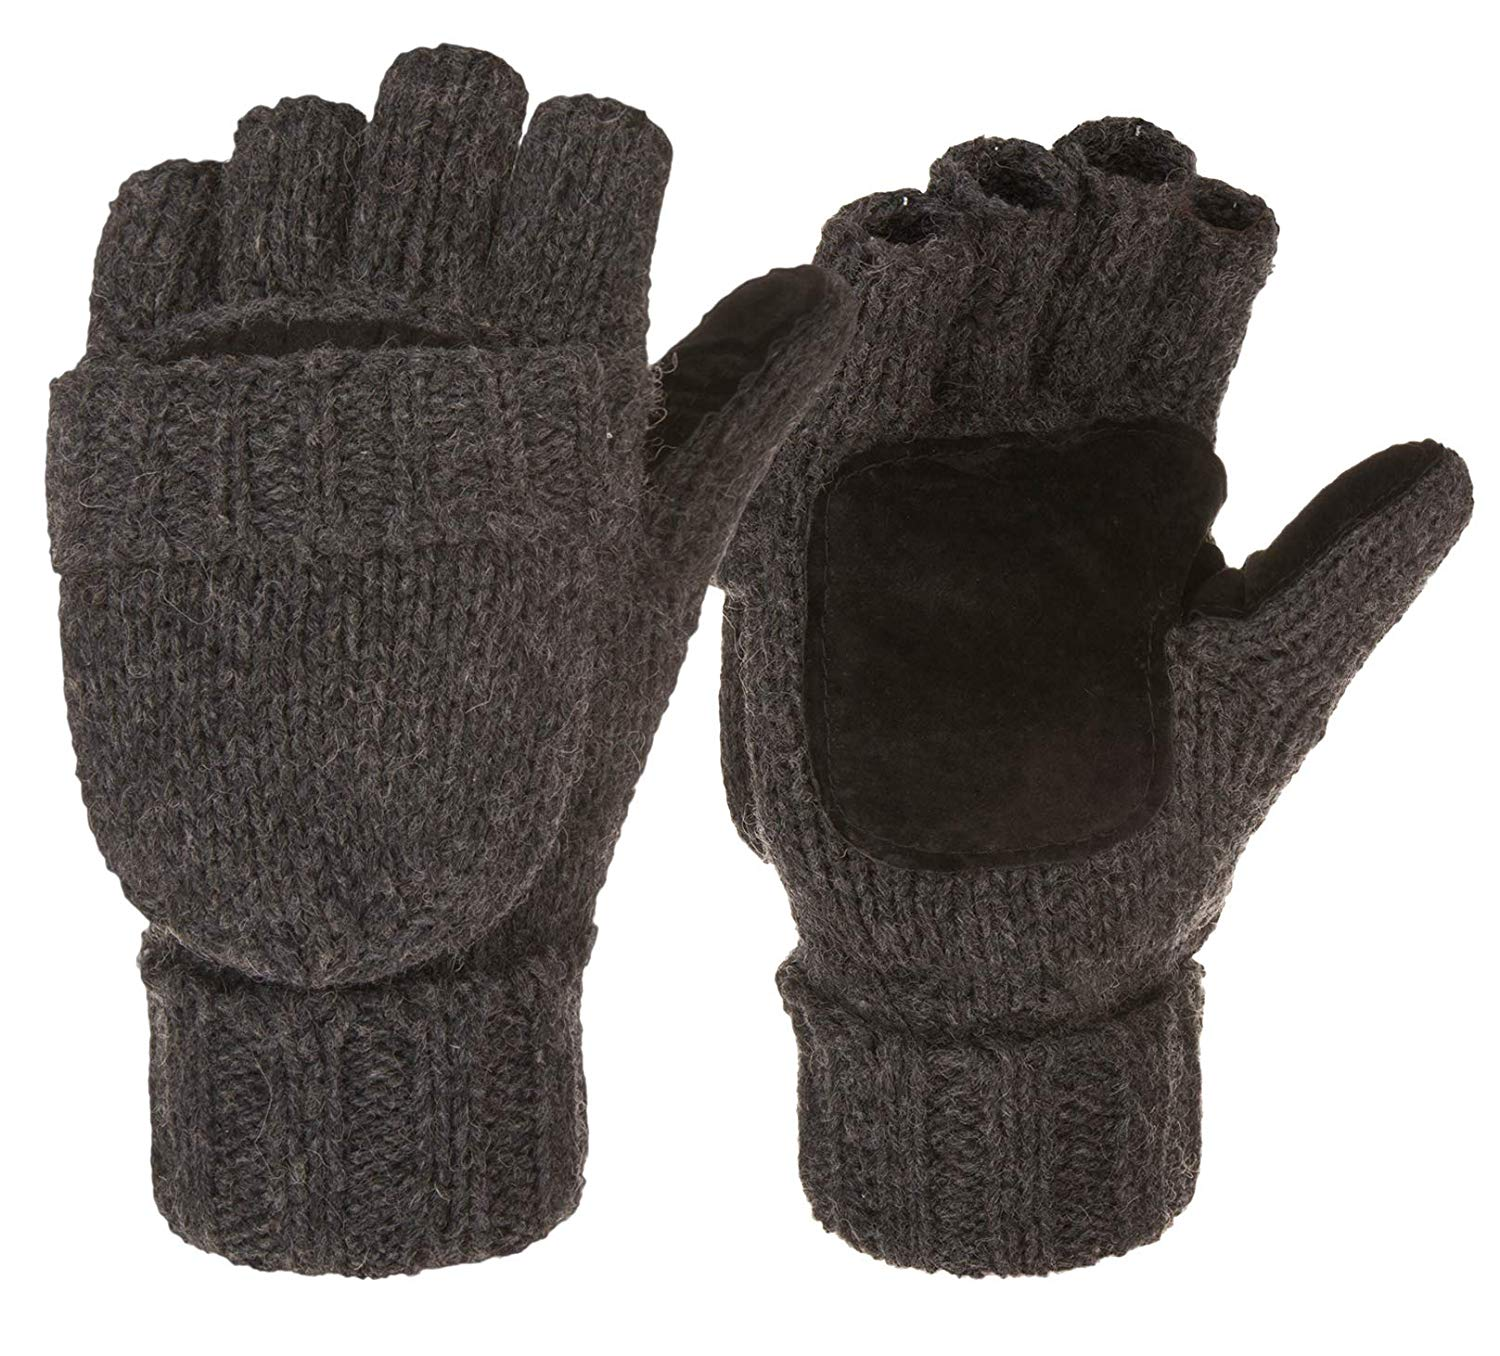 Eianru New Winter Knitted Suede Thinsulate Thermal Insulation Mittens Gloves